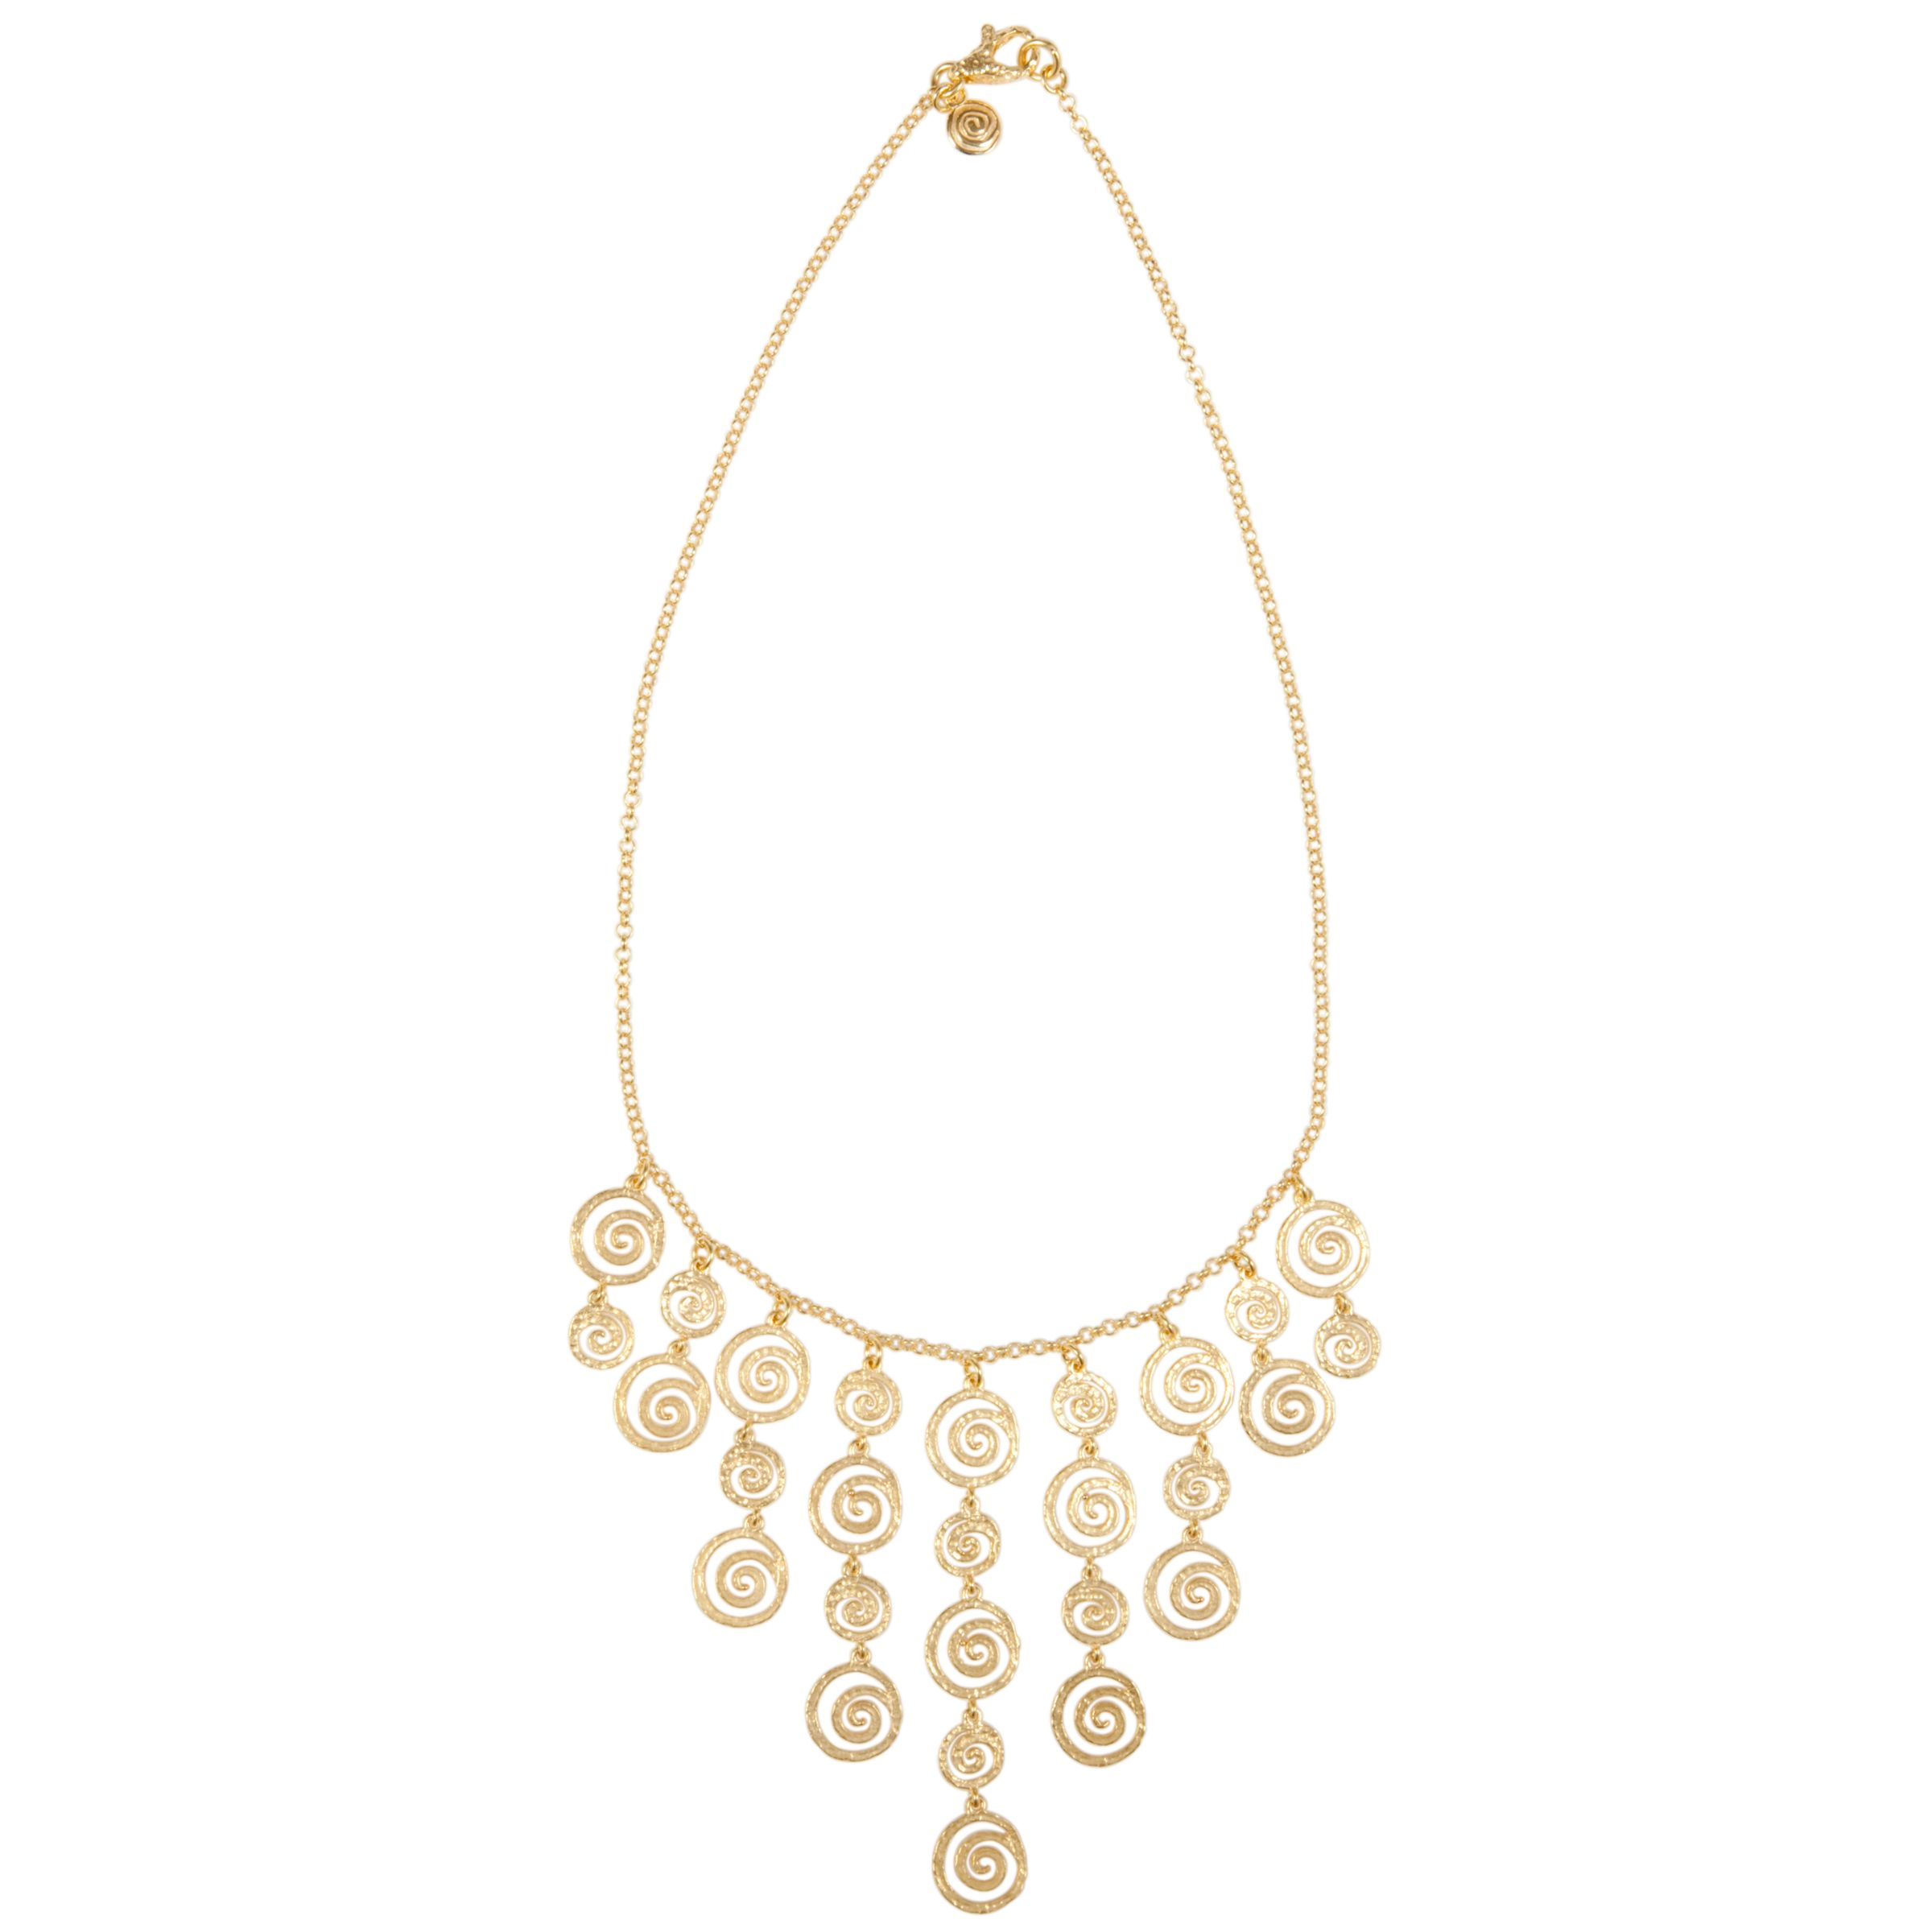 Etrusca 18ct Gold Plated Ornate Spiral Style Bib Necklace